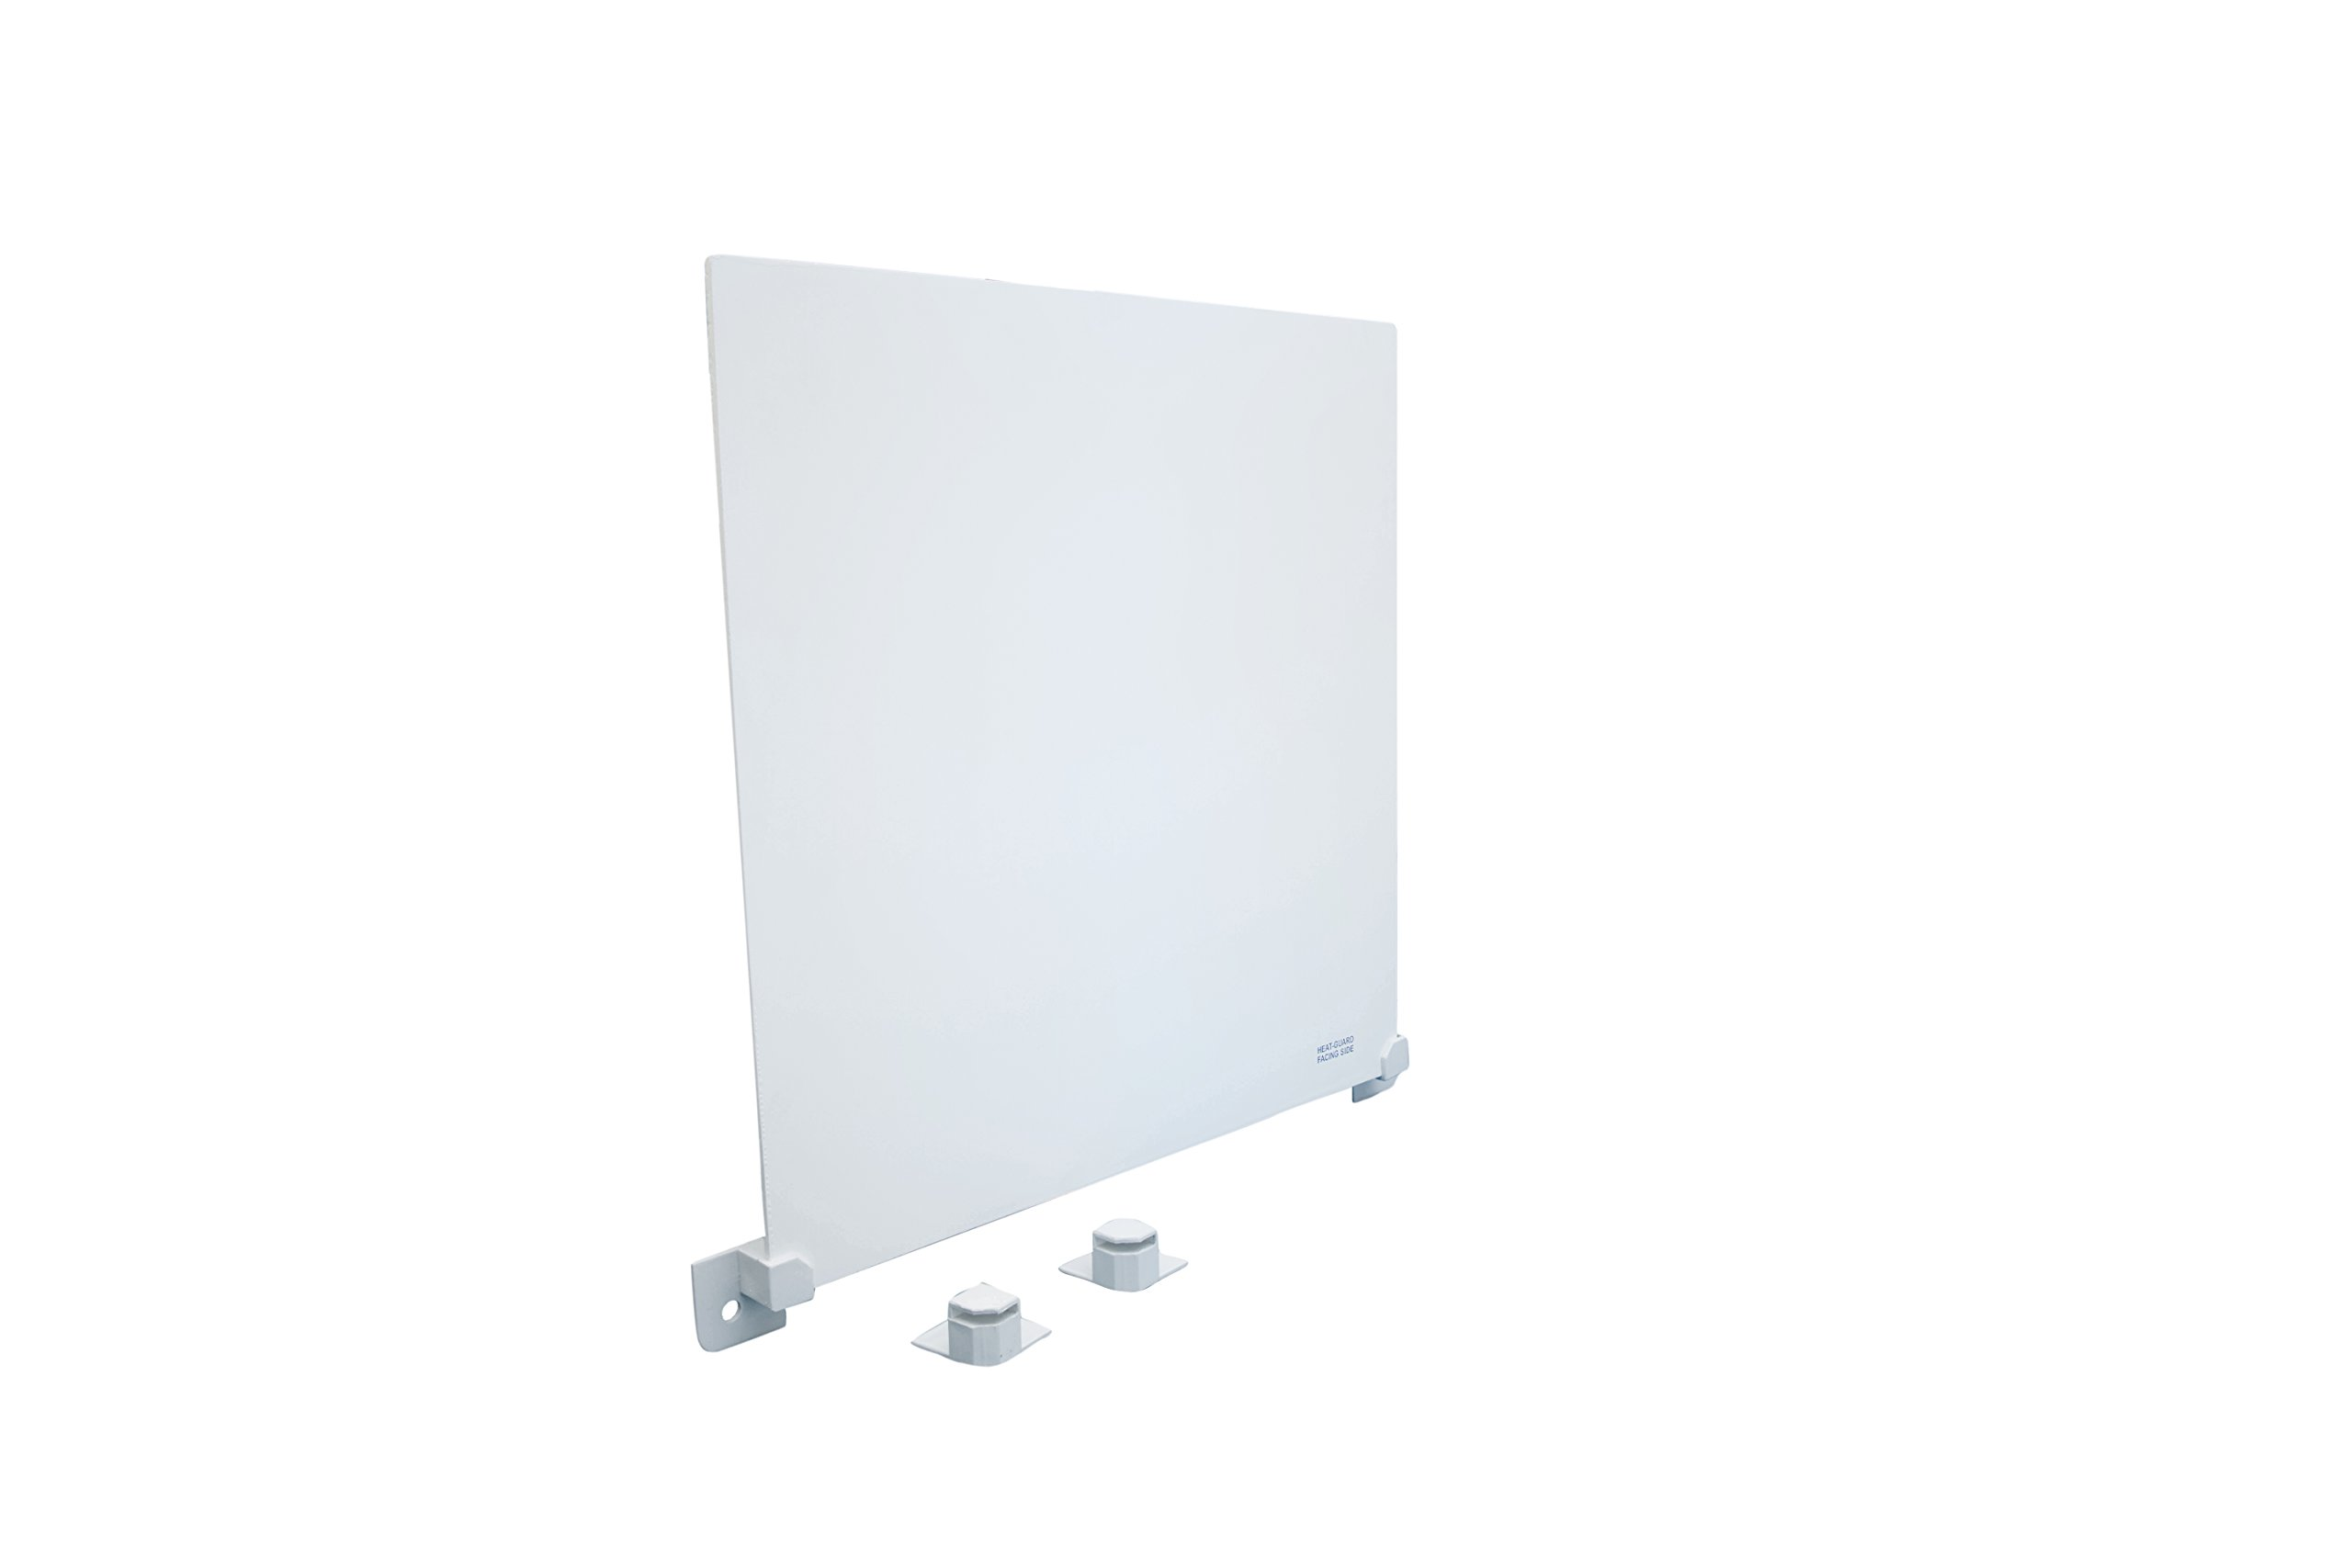 Heat Guard for Wall Mount Space Convector Heater Panel | Safest Version - Reduces Exterior Casing Temperature | Doubles the Efficiency of Heat Distribution | By EconoHome